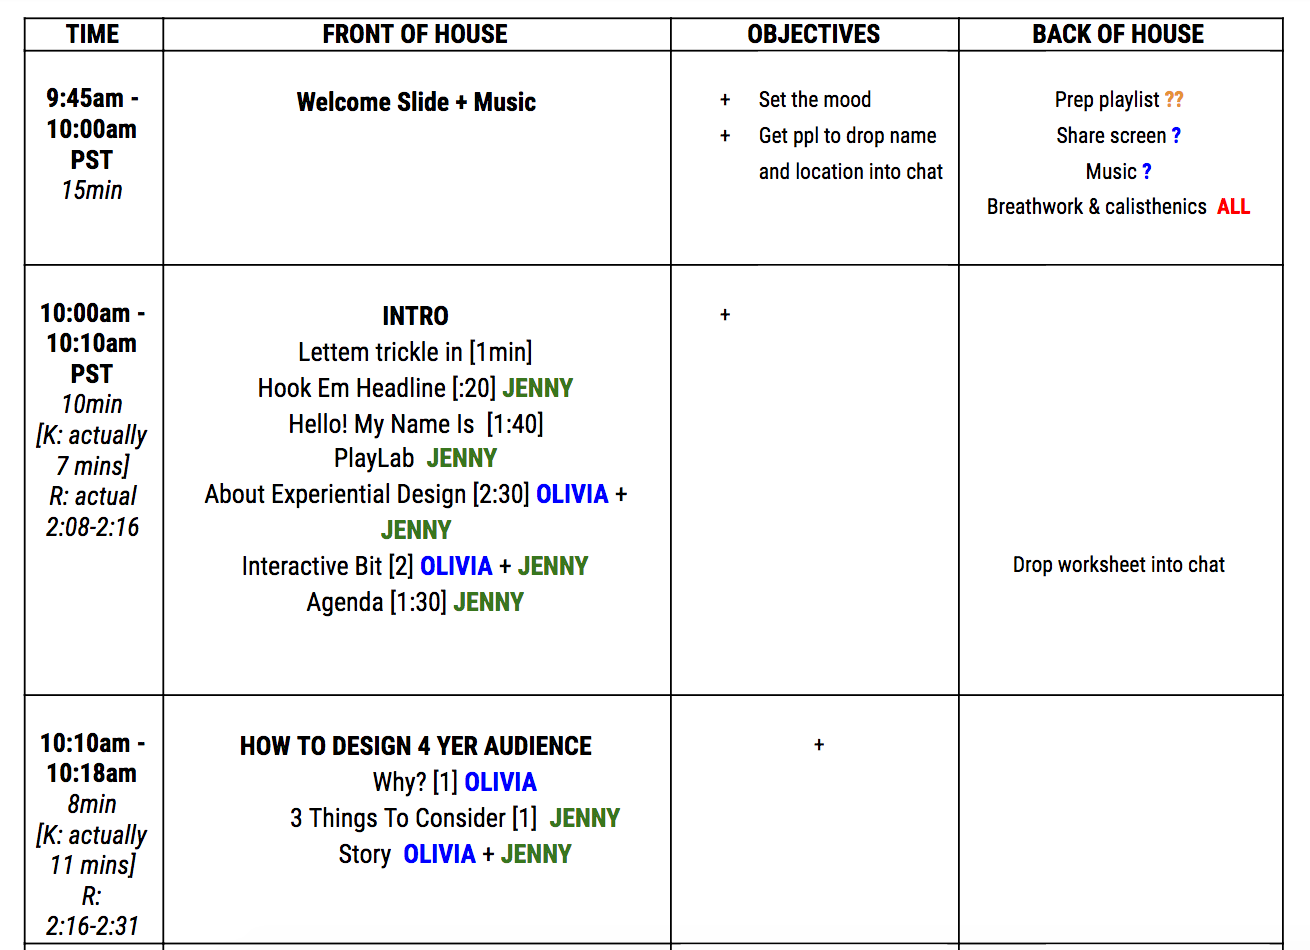 A screenshot of a spreadsheet showing the run of show for a virtual event.